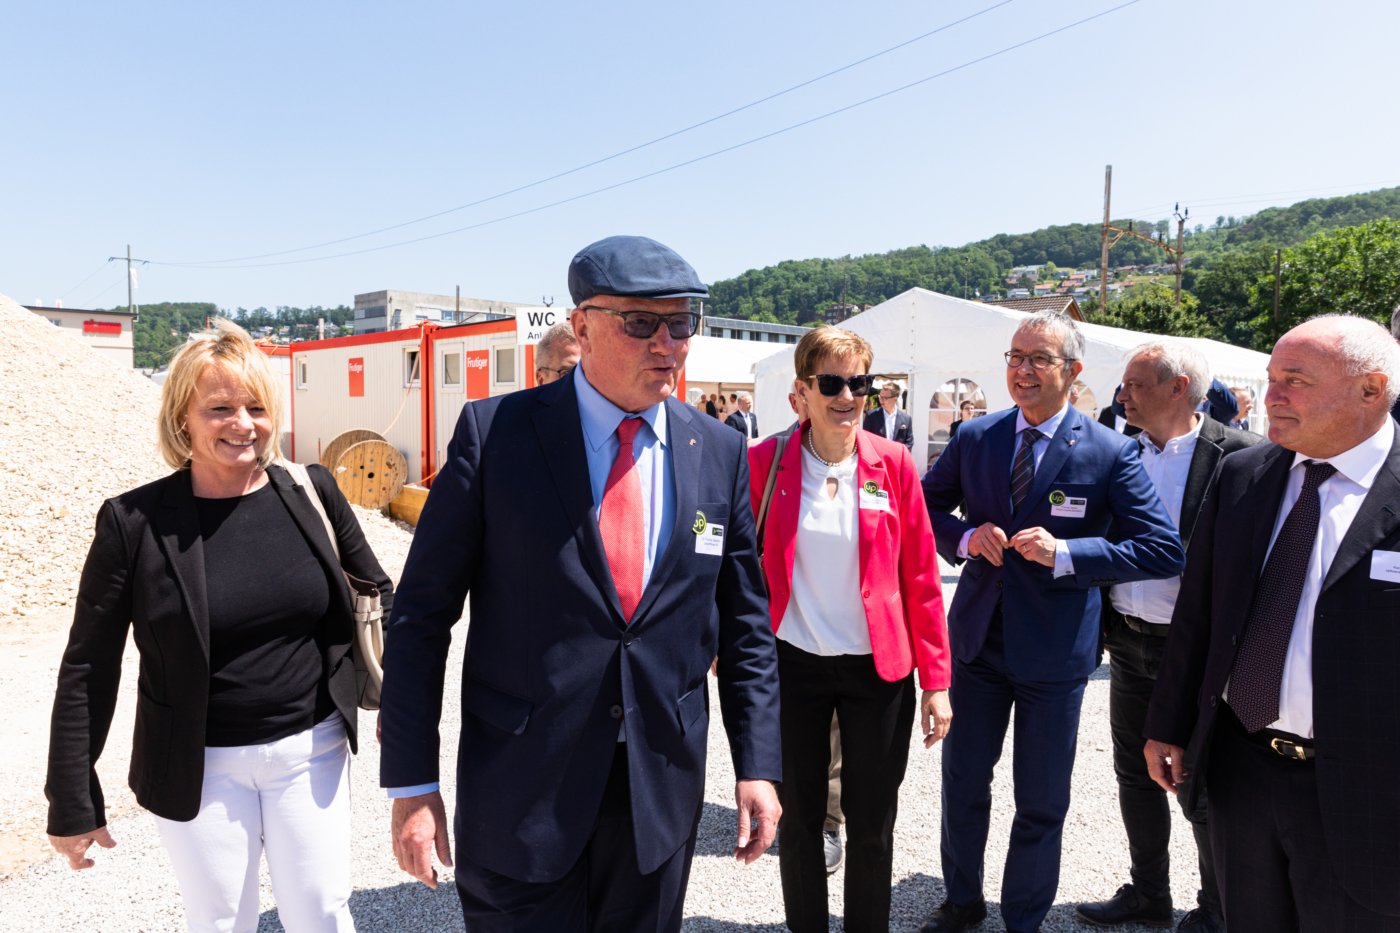 Photos for this media folder, The invited guests on their way to the construction site for the official laying of the foundation stone (from left to right): Elisabeth Schneider-Schneiter, Dr Thomas Staehelin, Dr Sabine Pegoraro, Thomas Weber, Daniel Bürgin and Karl Gun. © Copyright Sara Barth, Basel  Digitale Medienmappe «Laying the uptownBasel foundation stone: a quantum leap for the industry», uptownBasel